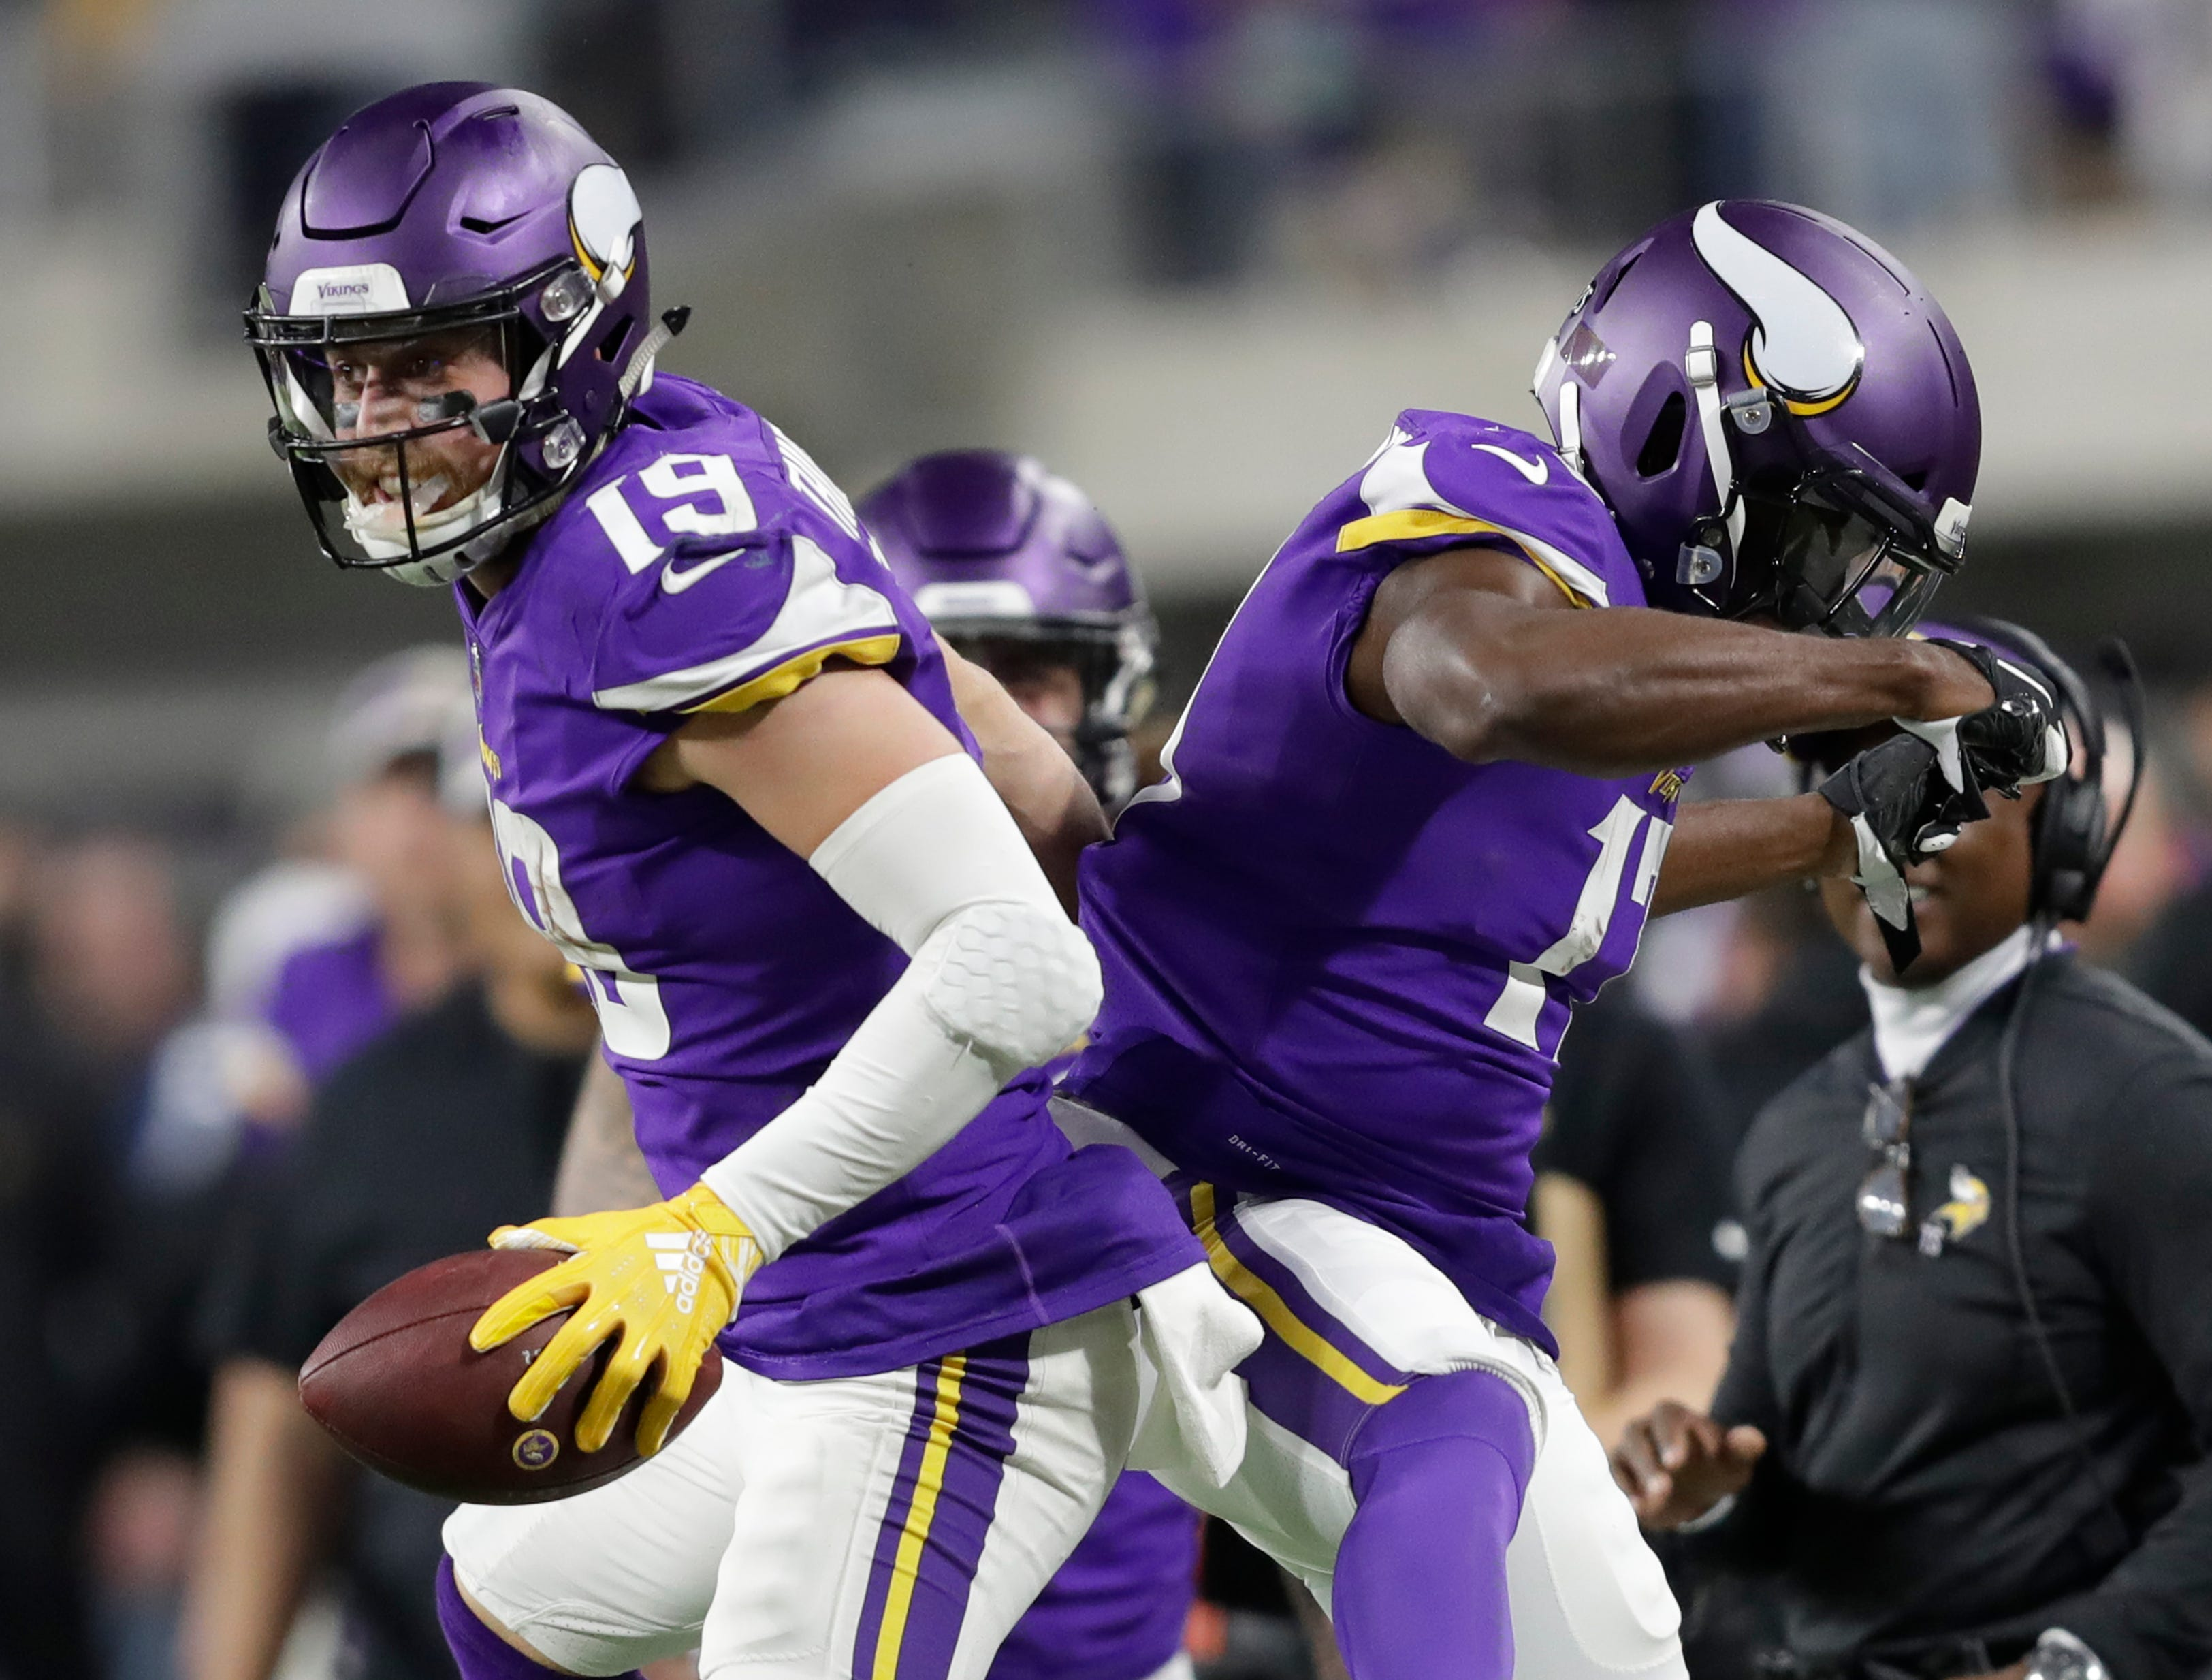 Minnesota Vikings wide receiver Adam Thielen (19) celebrates scoring a touchdown in the third quarter with wide receiver Aldrick Robinson (17) against the Green Bay Packers during their football game Sunday, November 25, 2018, at U.S. Bank Stadium in Minneapolis, Minn. 